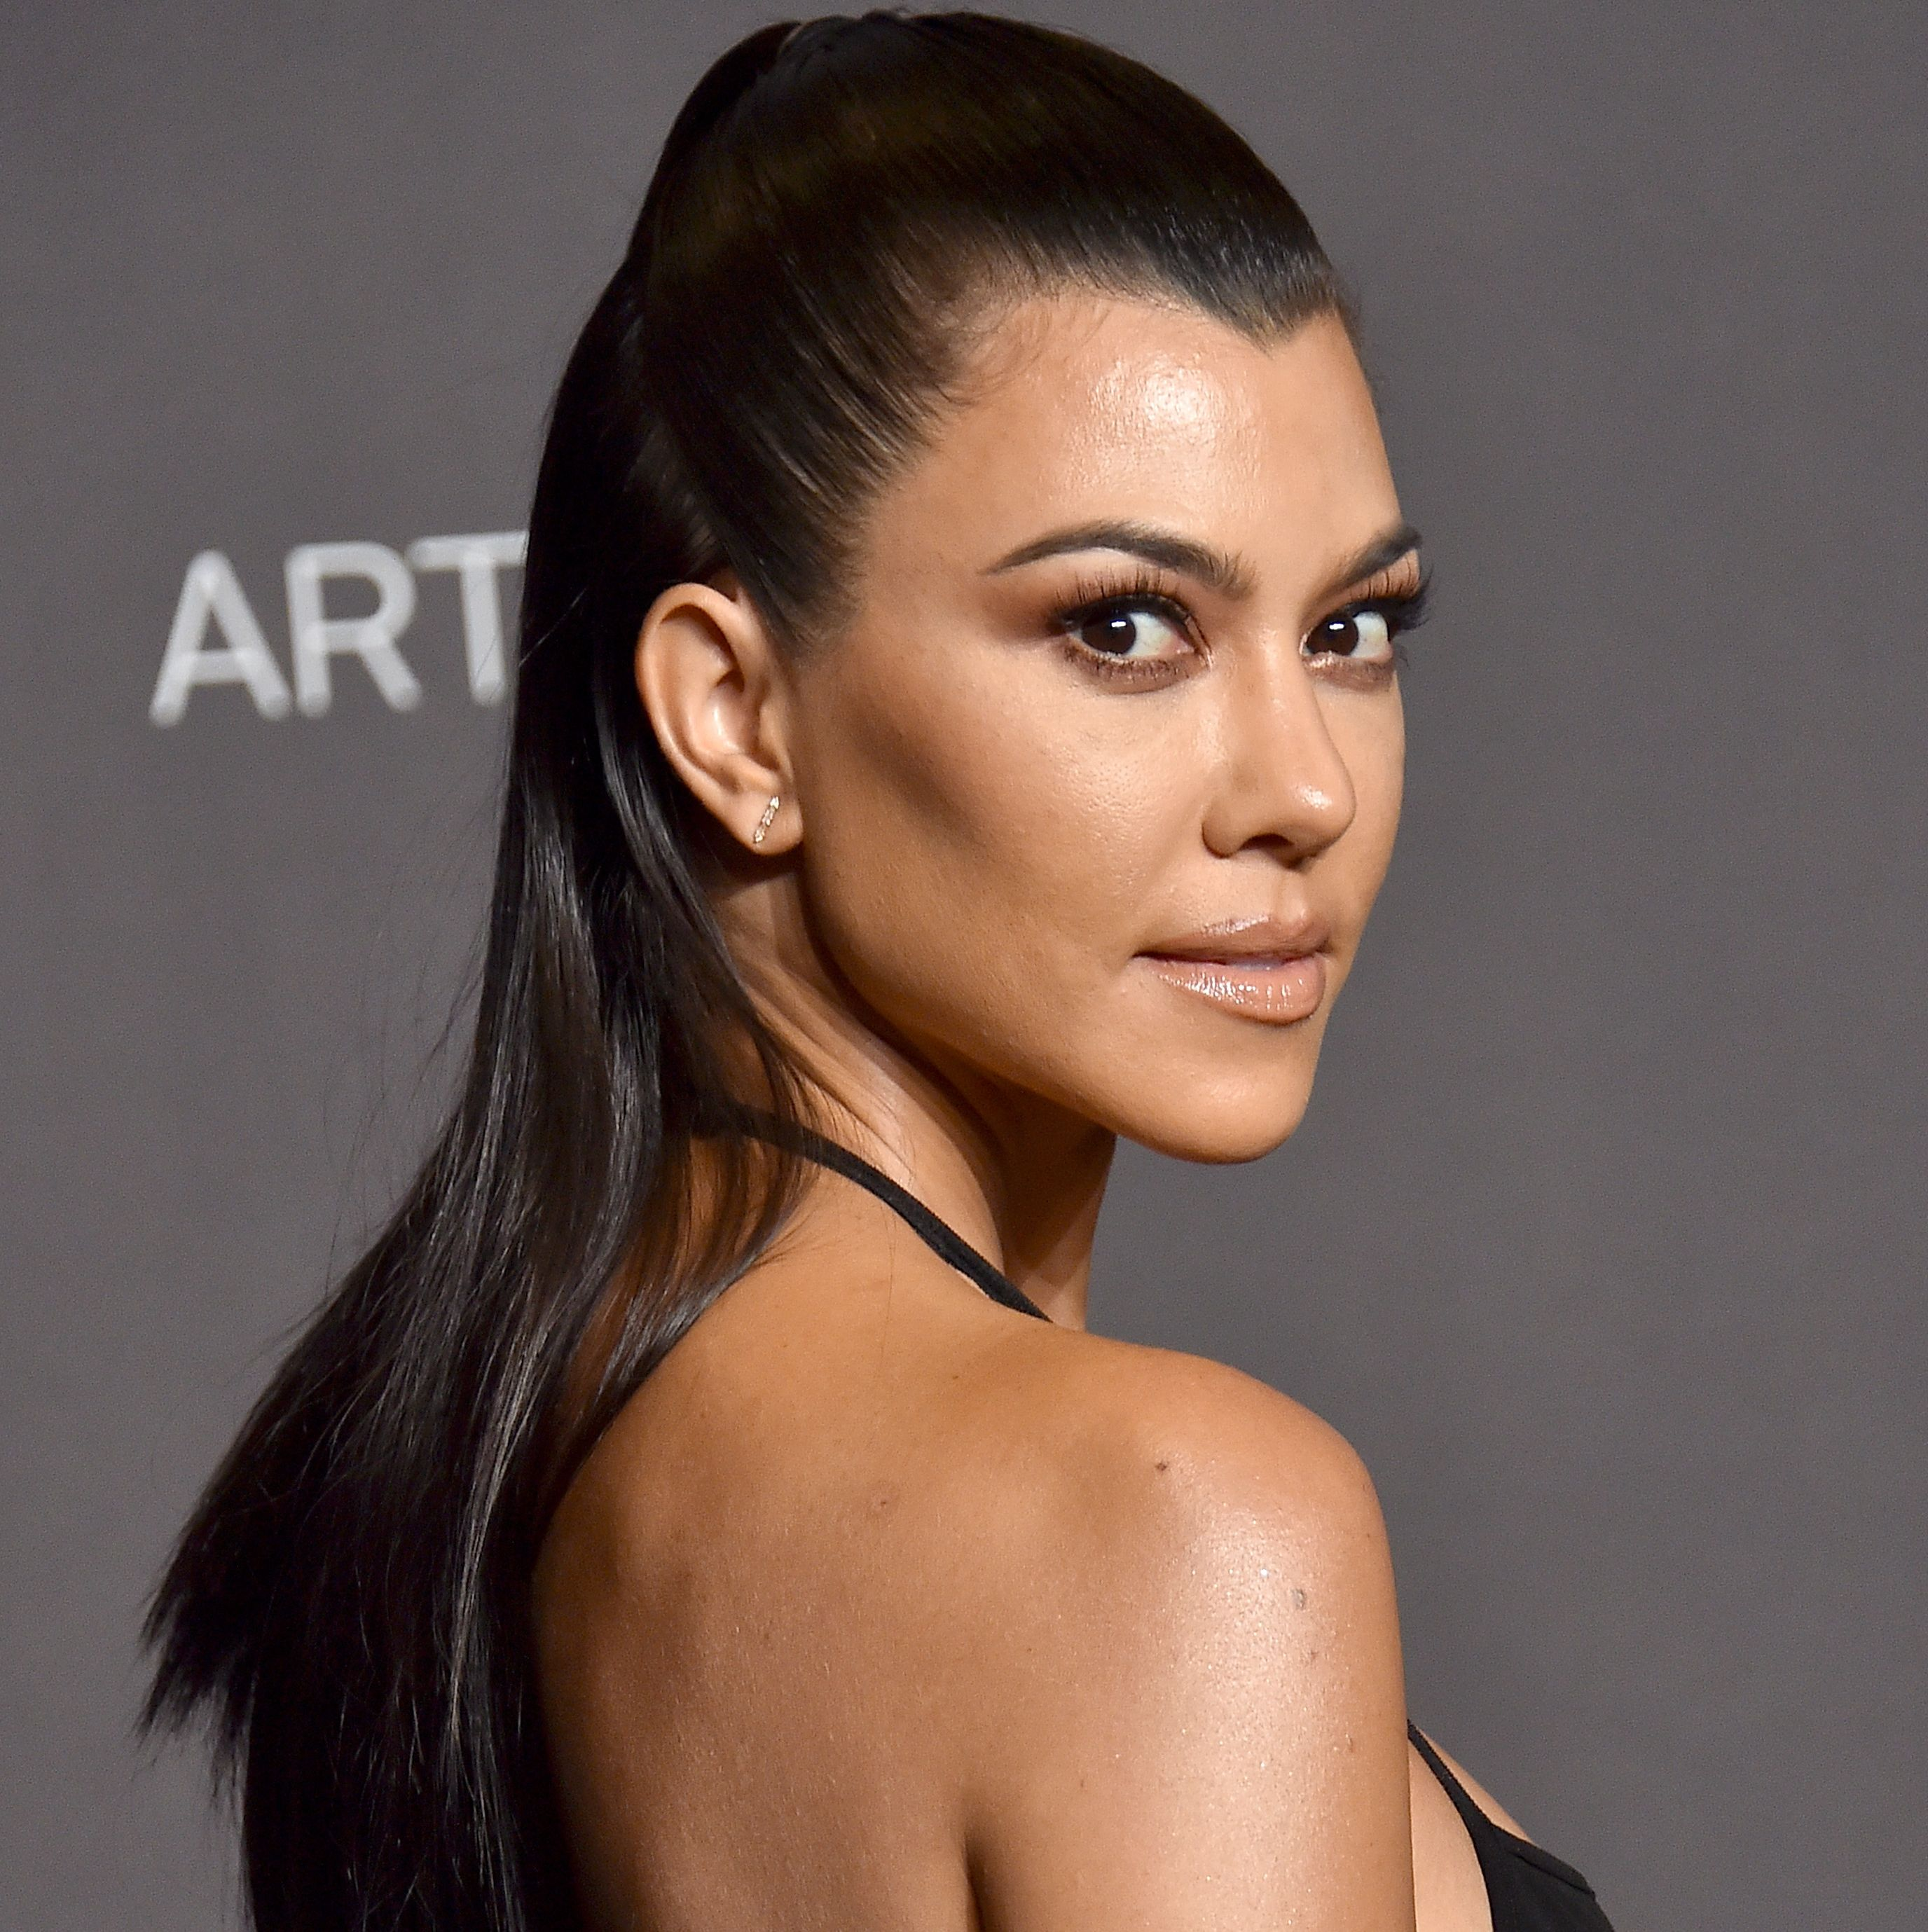 Kourtney Kardashian Had a Major Photoshop Fail and OMG I Cannot Unsee This